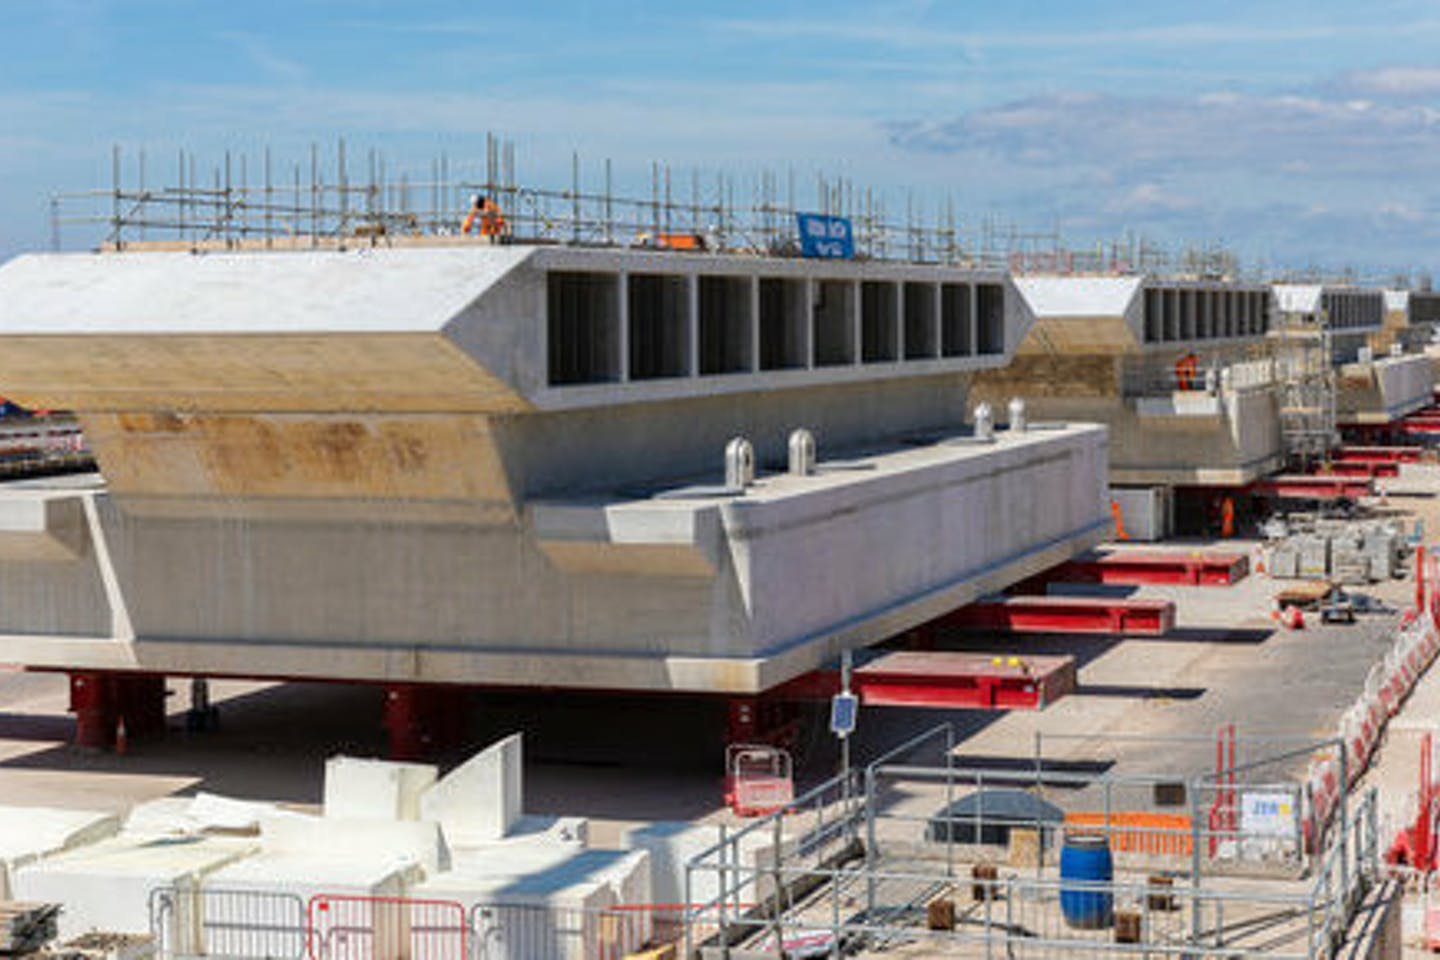 Six tunnel heads, each weighing 4,650 tonnes, will be lifted into position at Hinkley Point